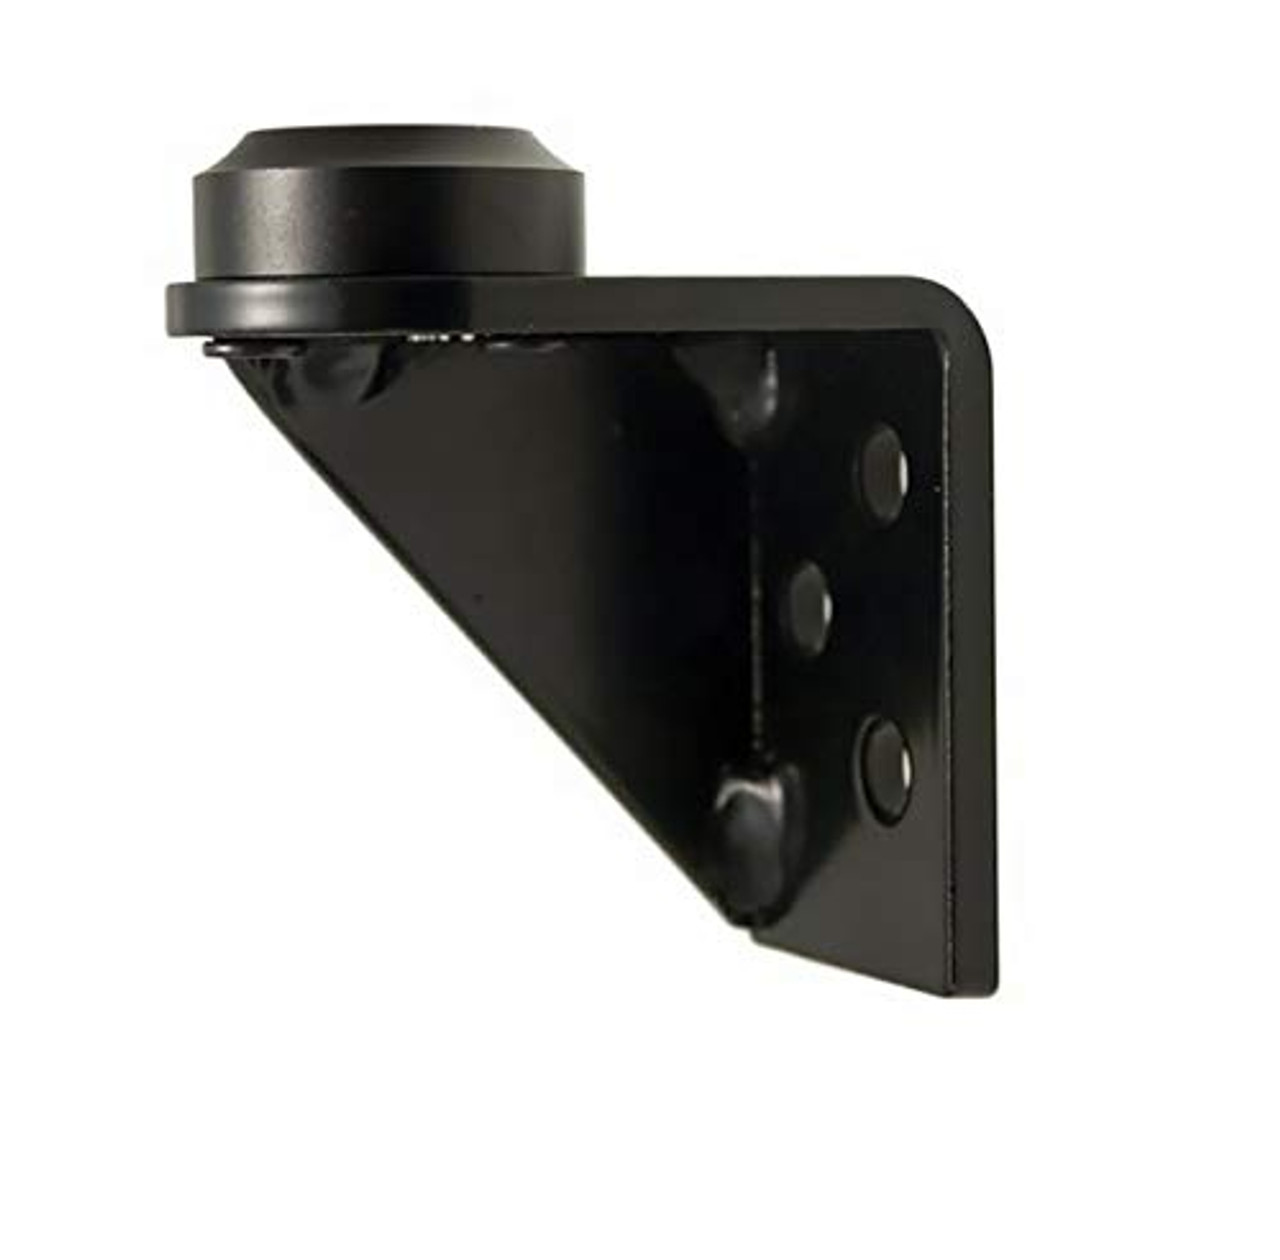 Zirkona Universal Wall Mount - Replaces PN 17245 (7110-1228) | 0410XE8E9OG